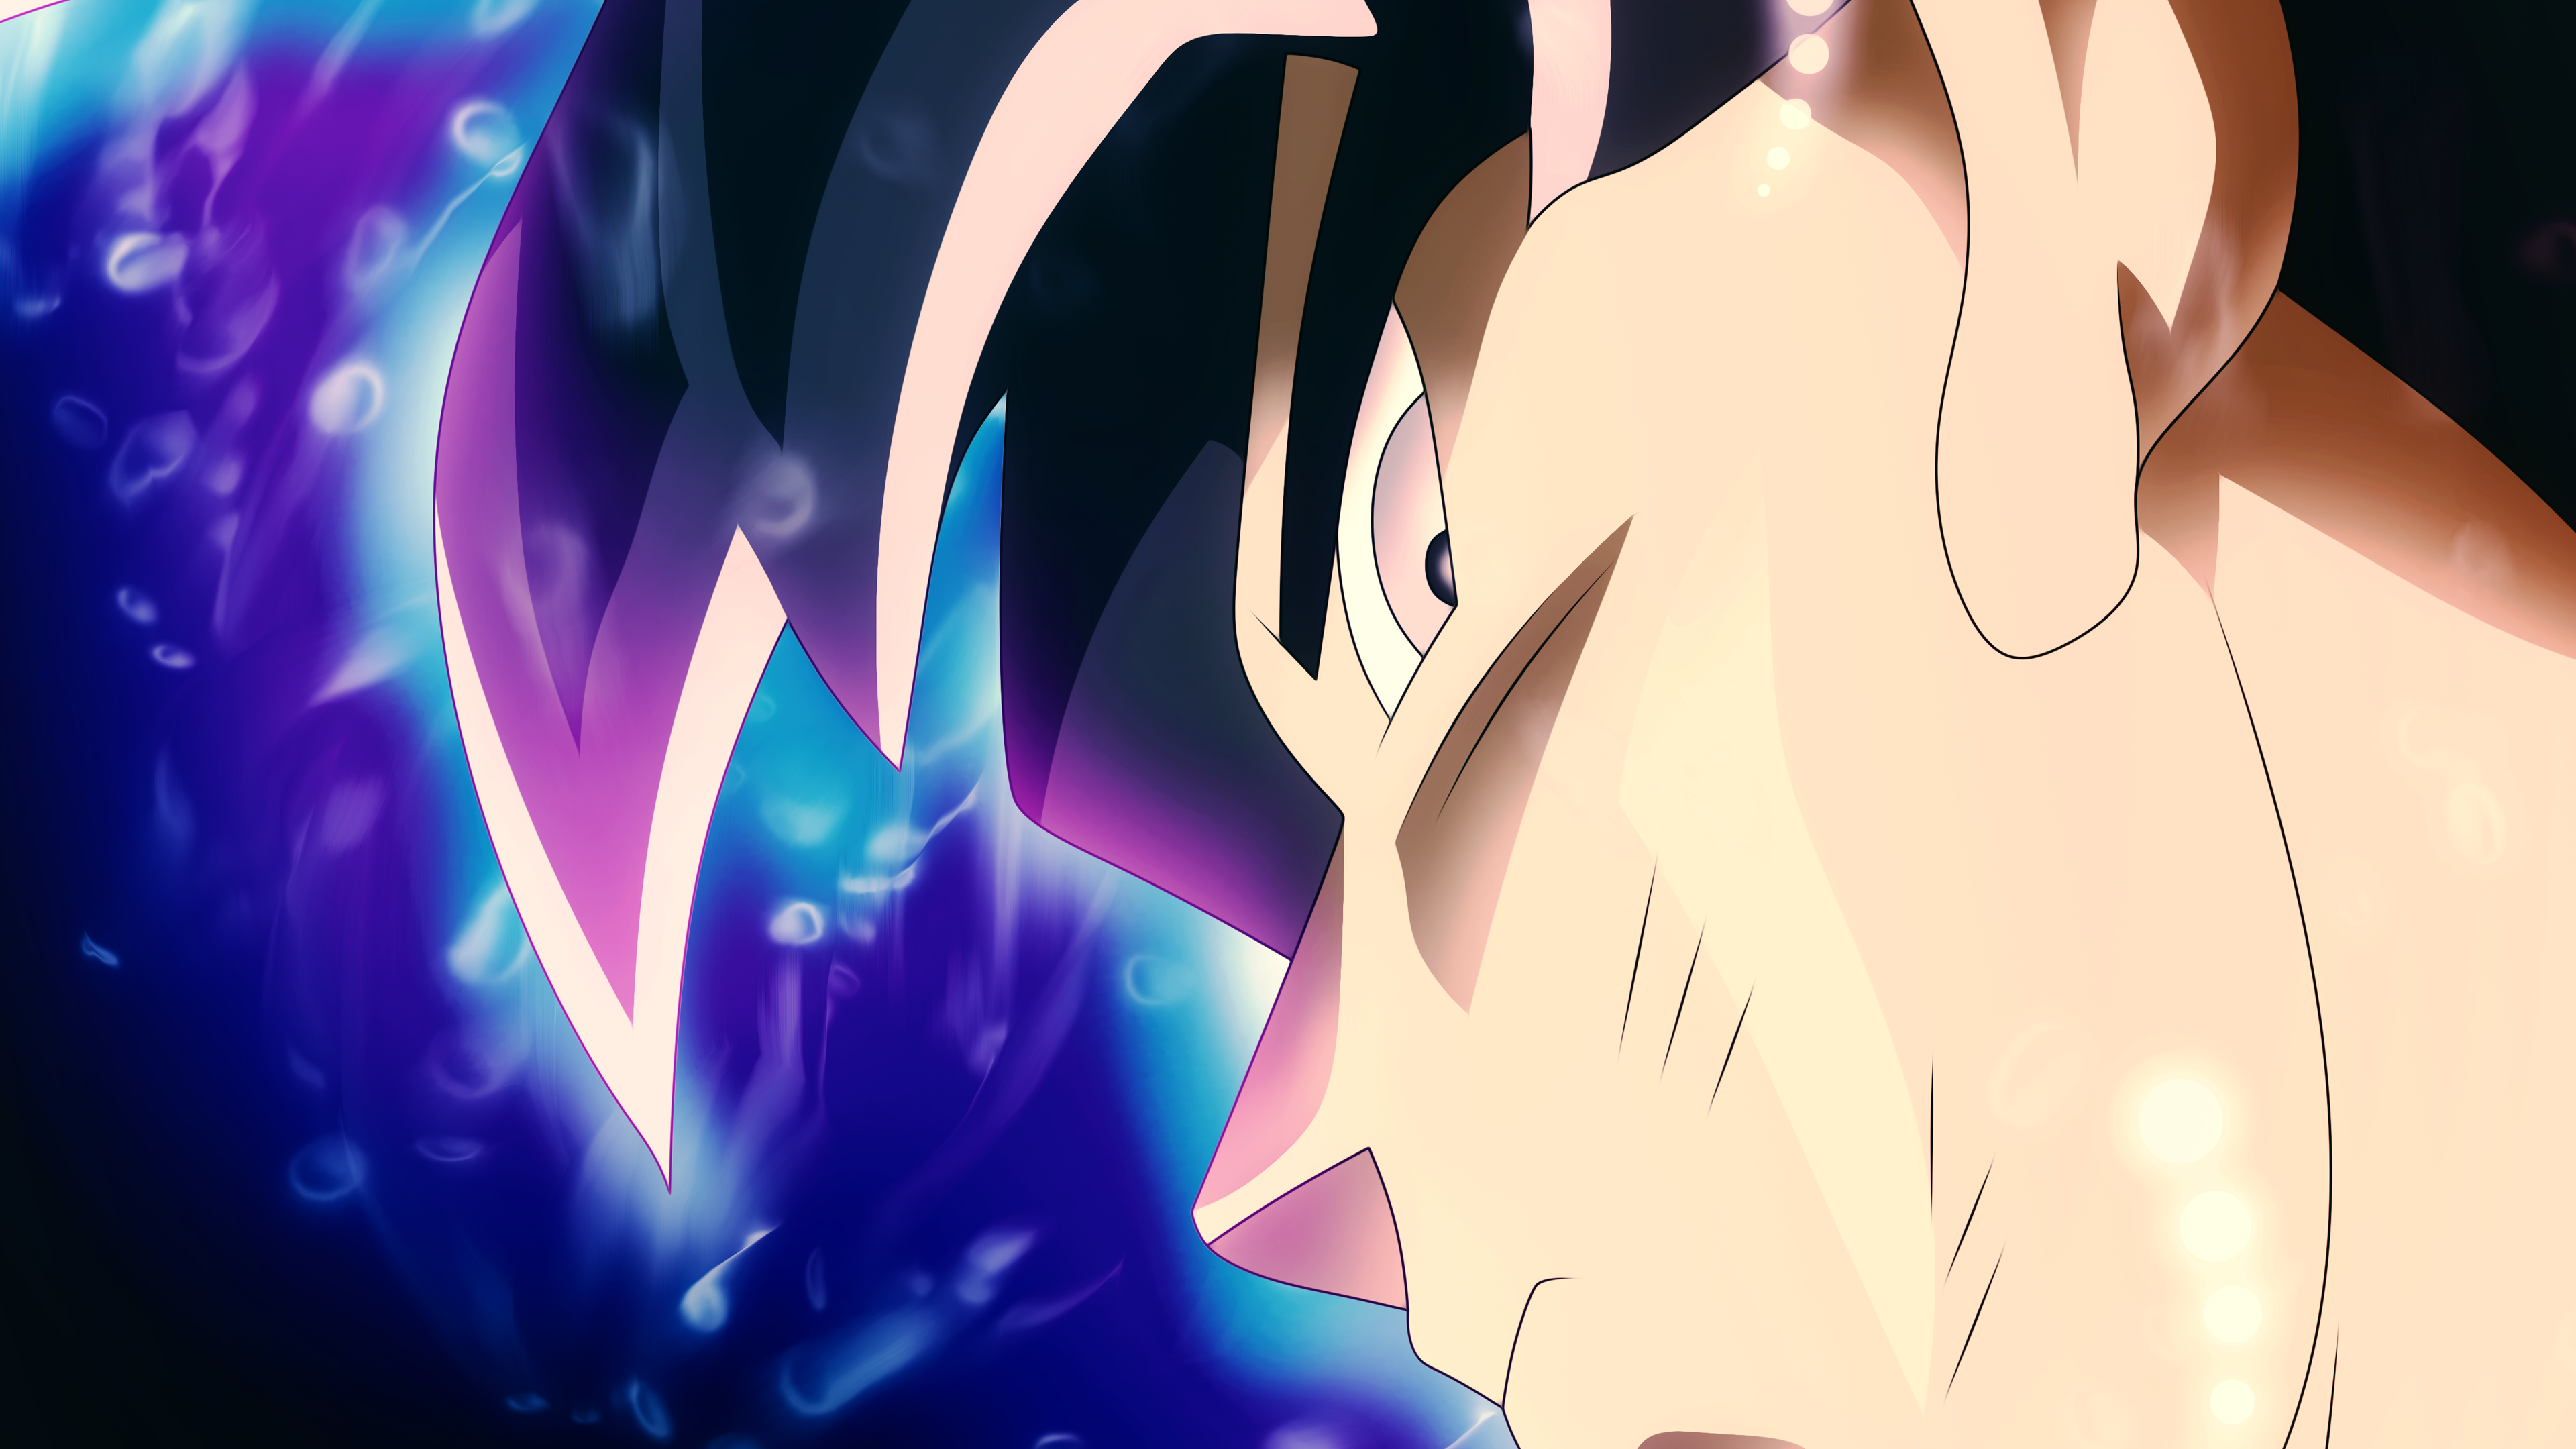 Goku Ultra Instinct Wallpaper Hd: Ultra Instinct Goku 4k Ultra HD Wallpaper And Background